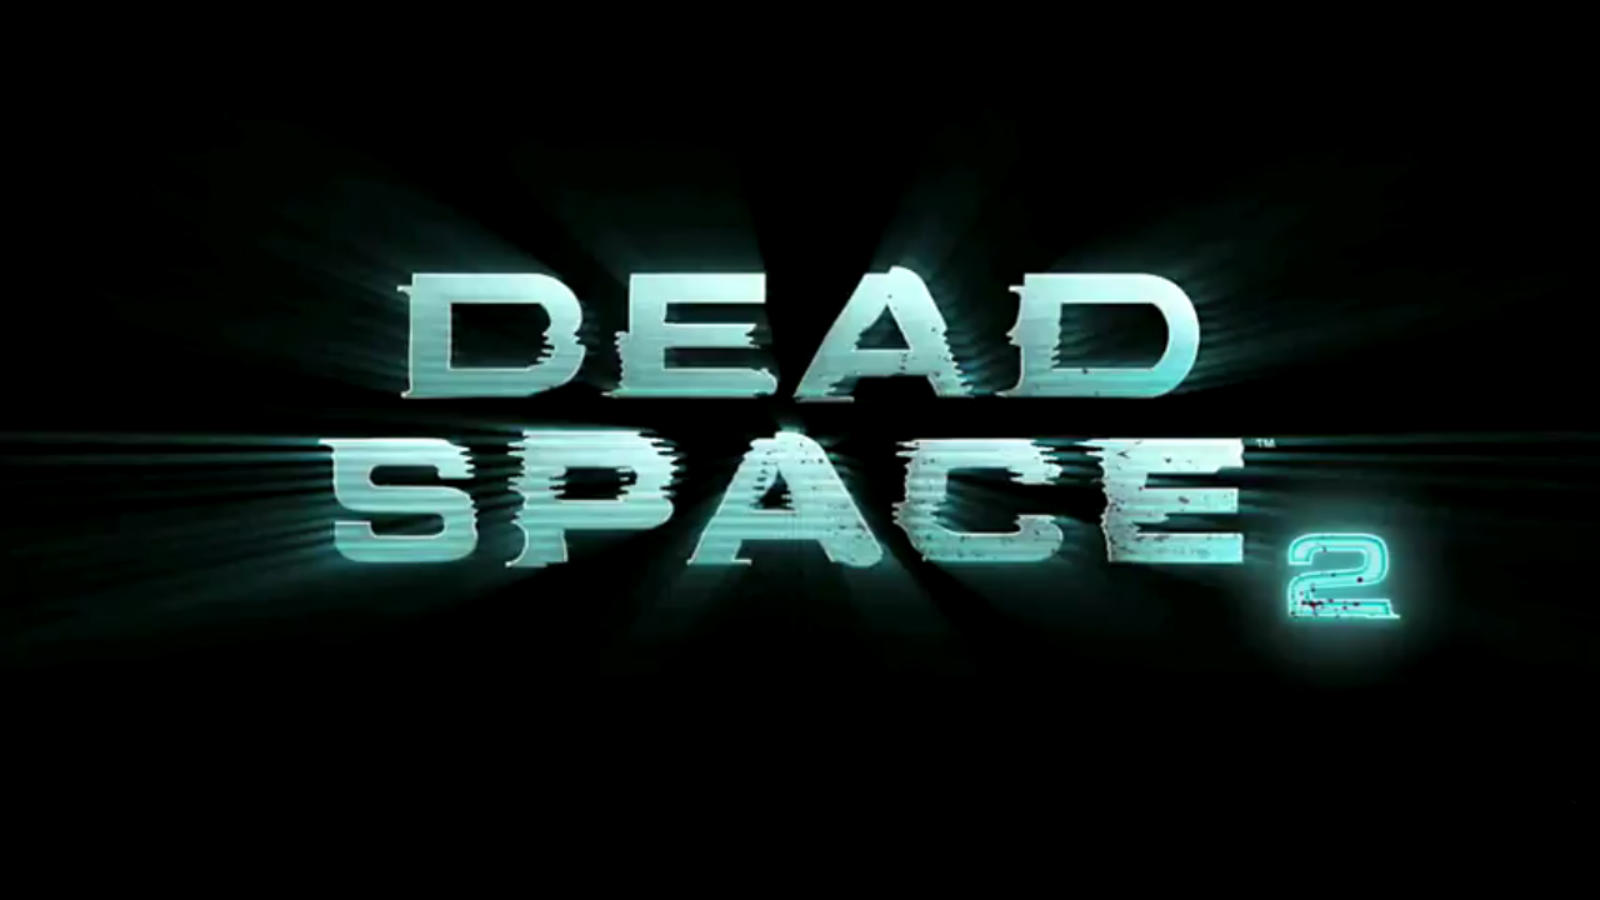 Dead Space 2 HD Wallpapers DVD Cover | Desktop Wallpapers